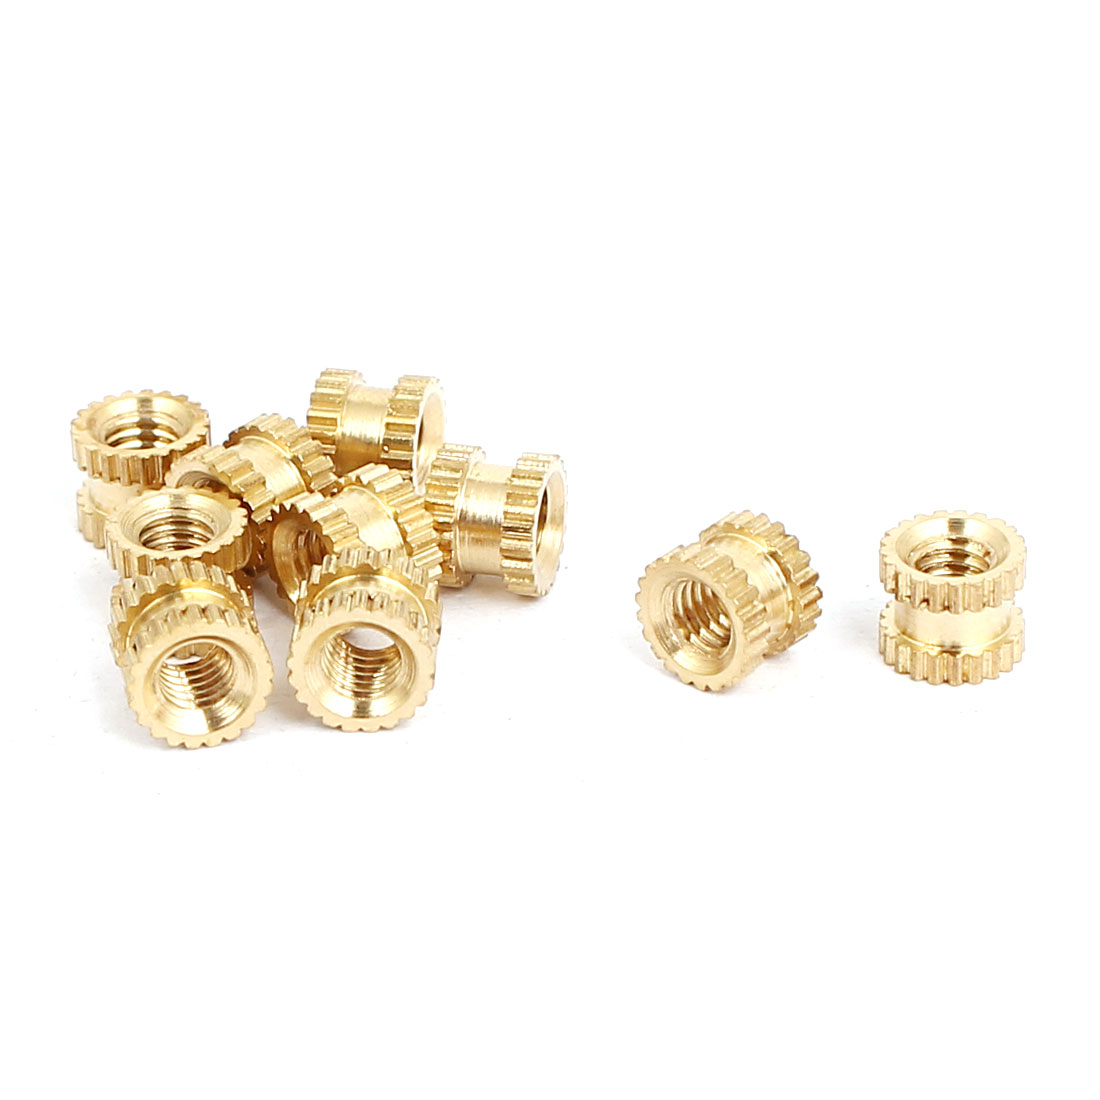 M3x4mmx5mm Female Threaded Brass Knurled Insert Embedded Nuts Gold Tone 10pcs